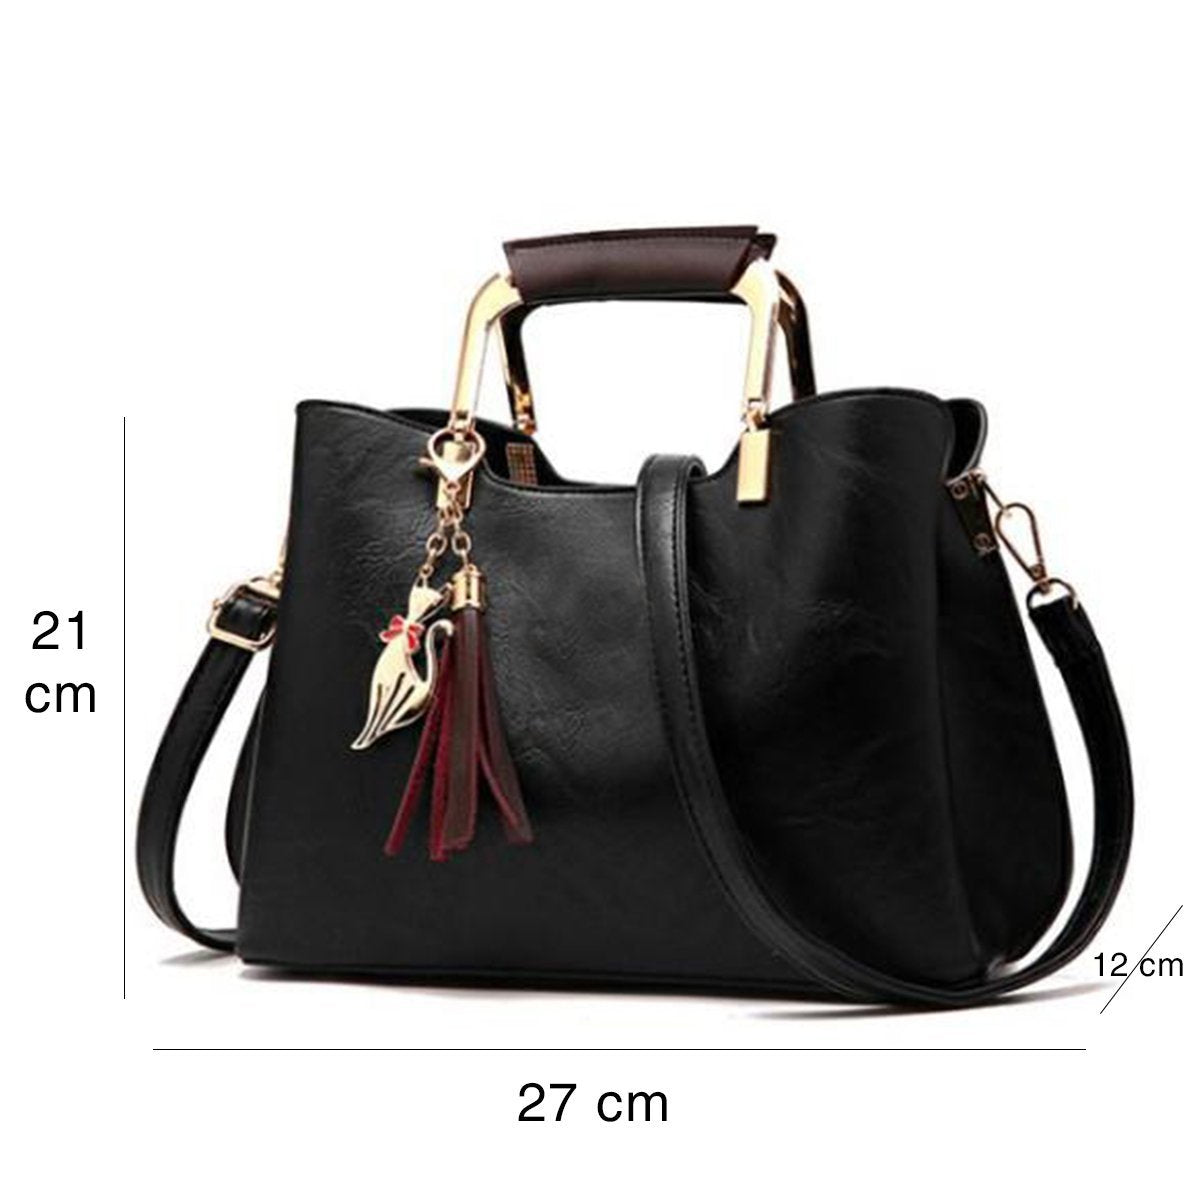 Mercedes Deluxe Handbag For Women